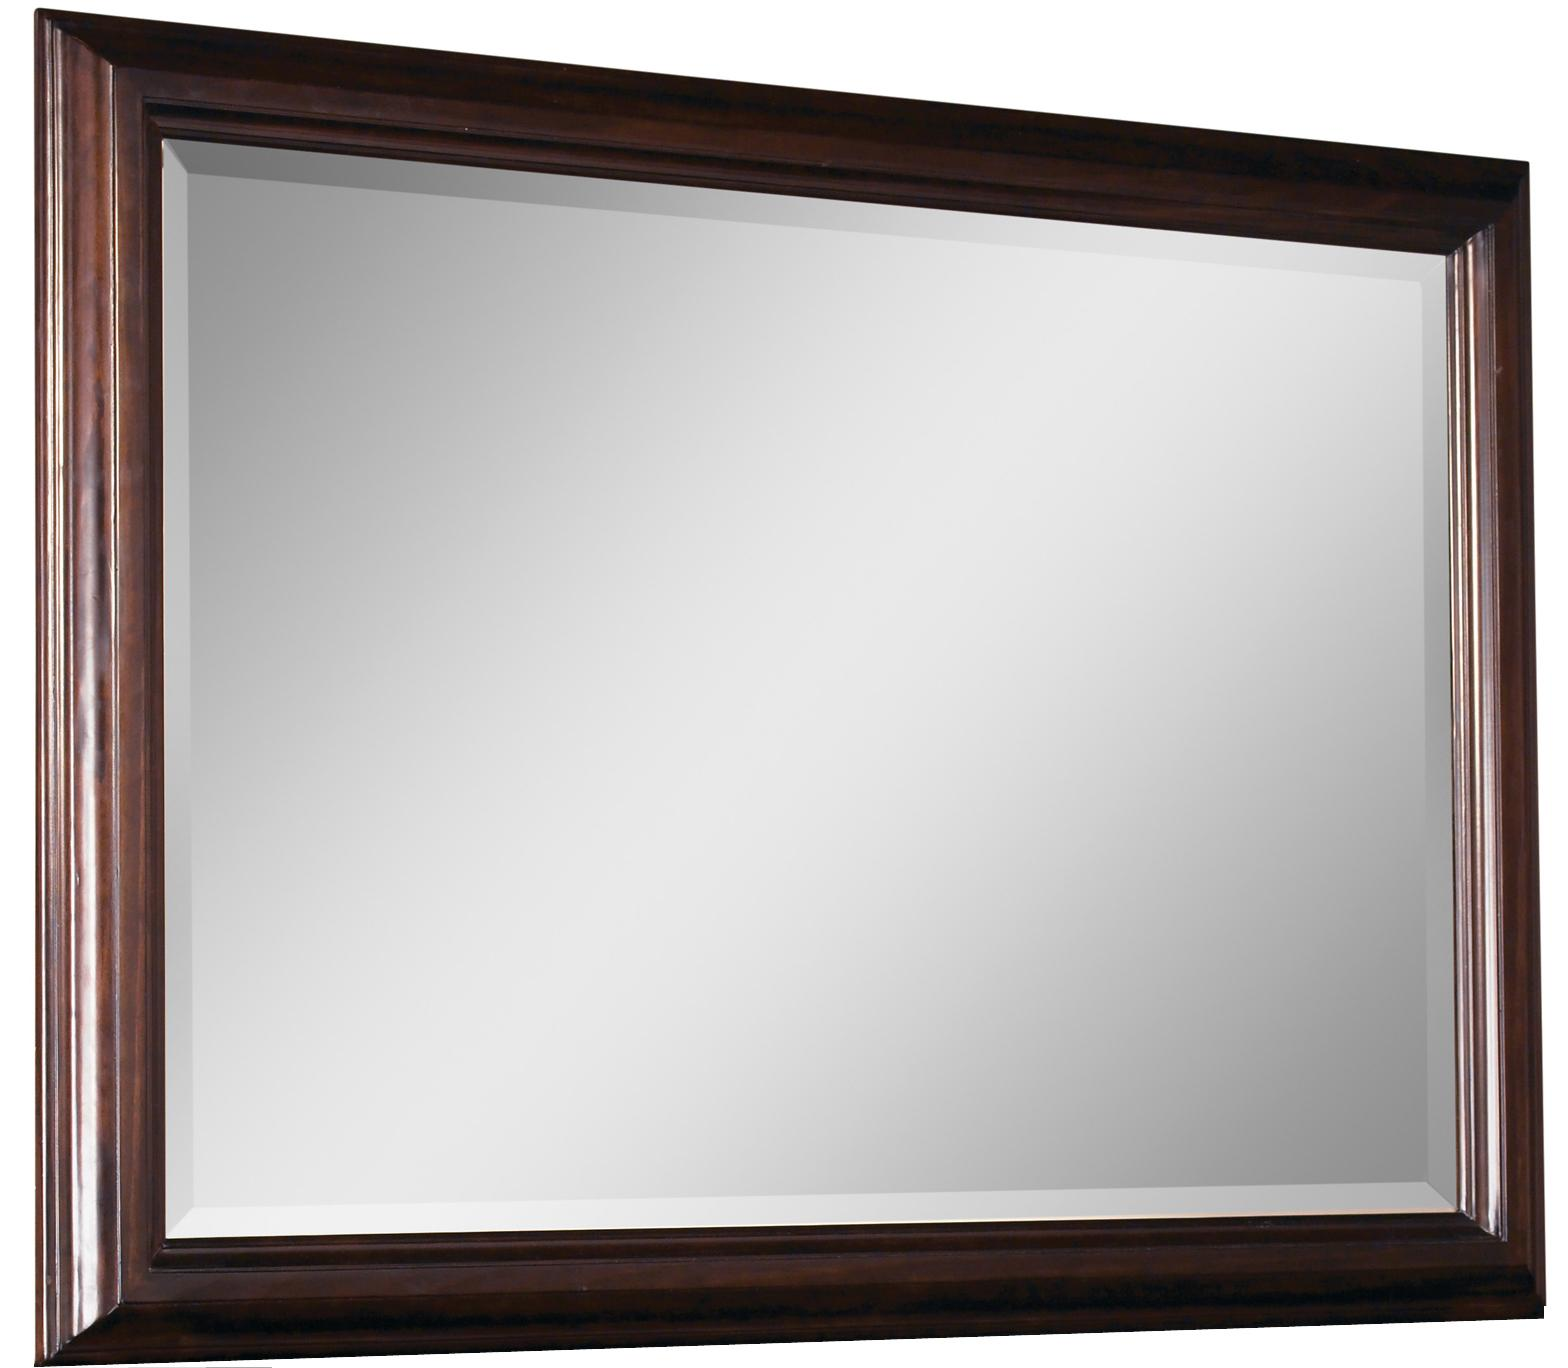 Intrigue Landscape Mirror by A.R.T. Furniture Inc at Stoney Creek Furniture